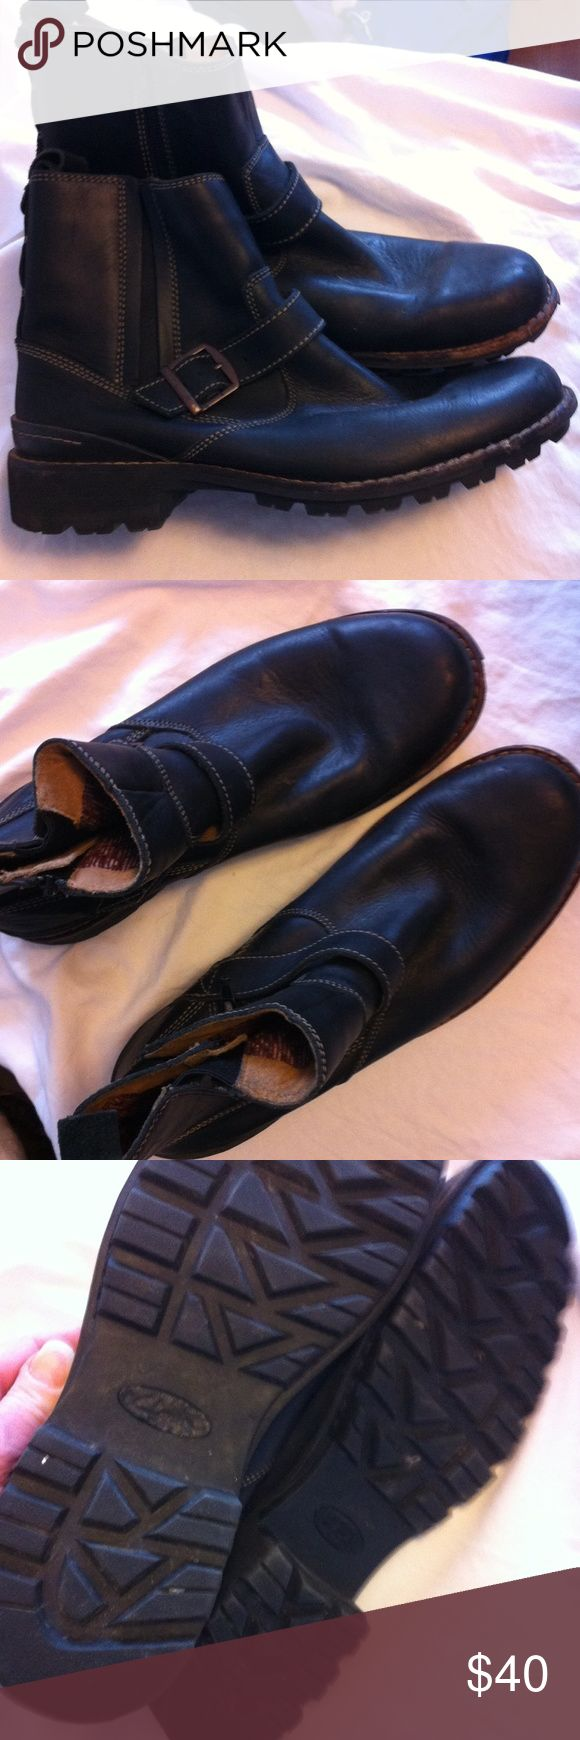 Men's motorcycle boots Leather Worn about 3 times, my Son grew out of them. Clarks Shoes Boots